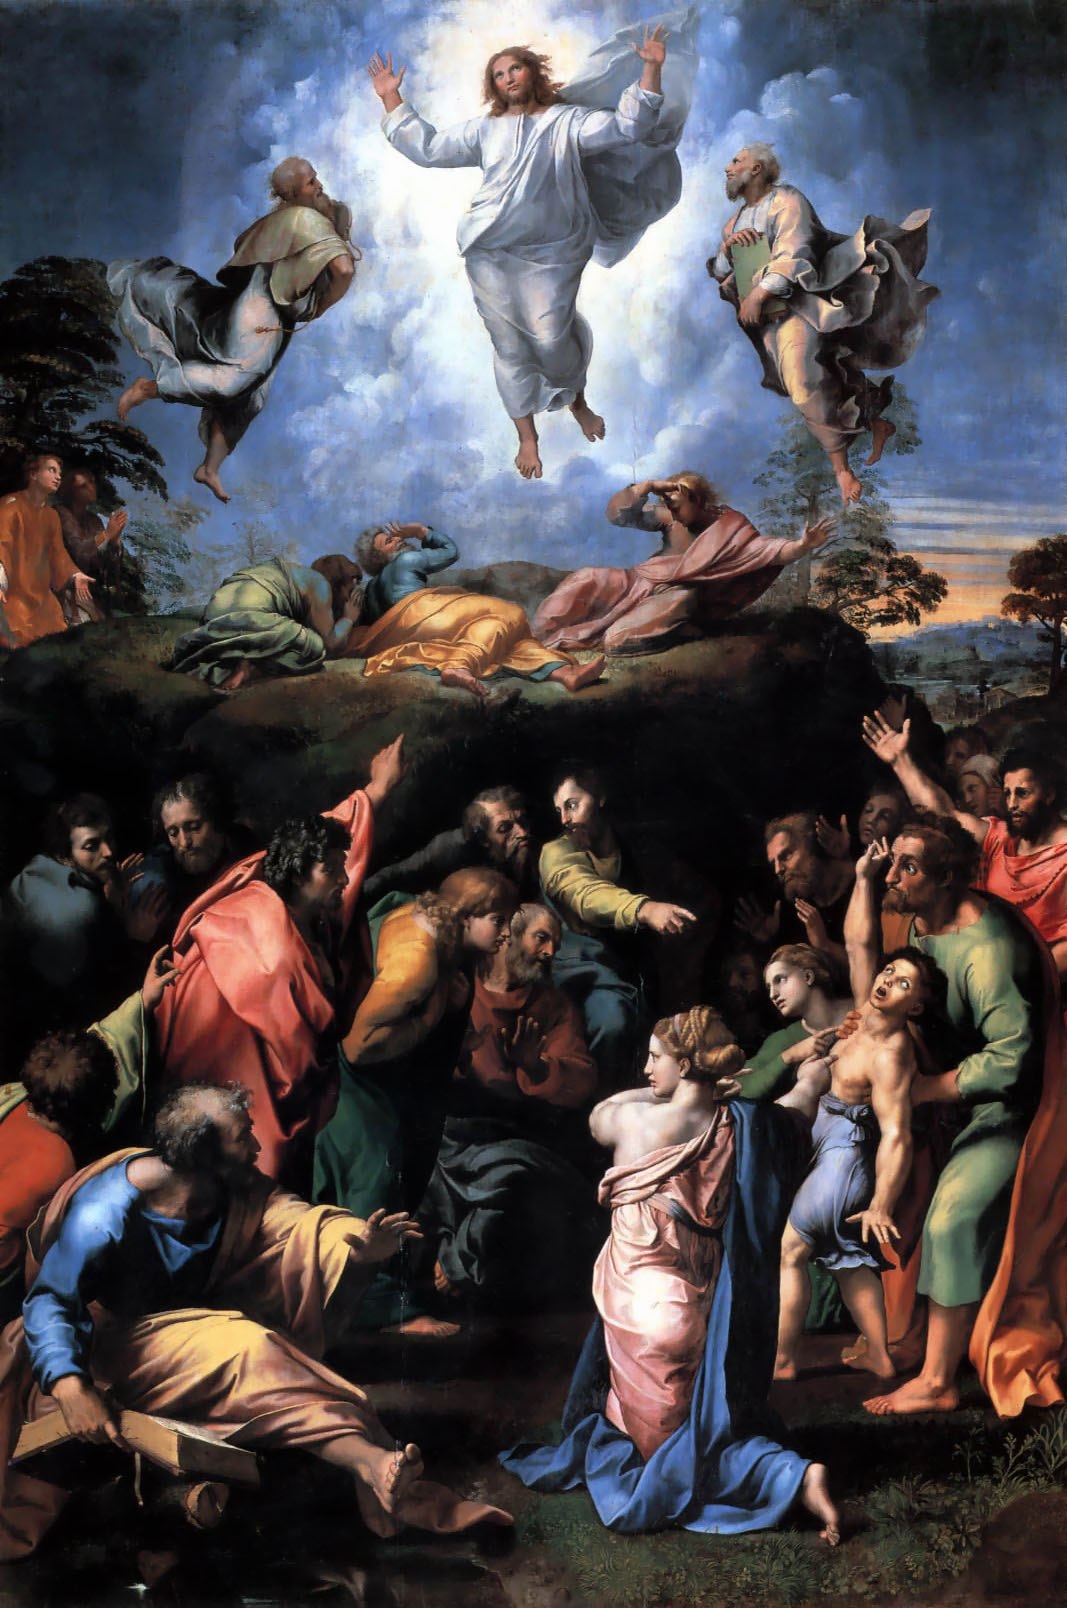 The Transfiguration, by Raphael, c. 1520